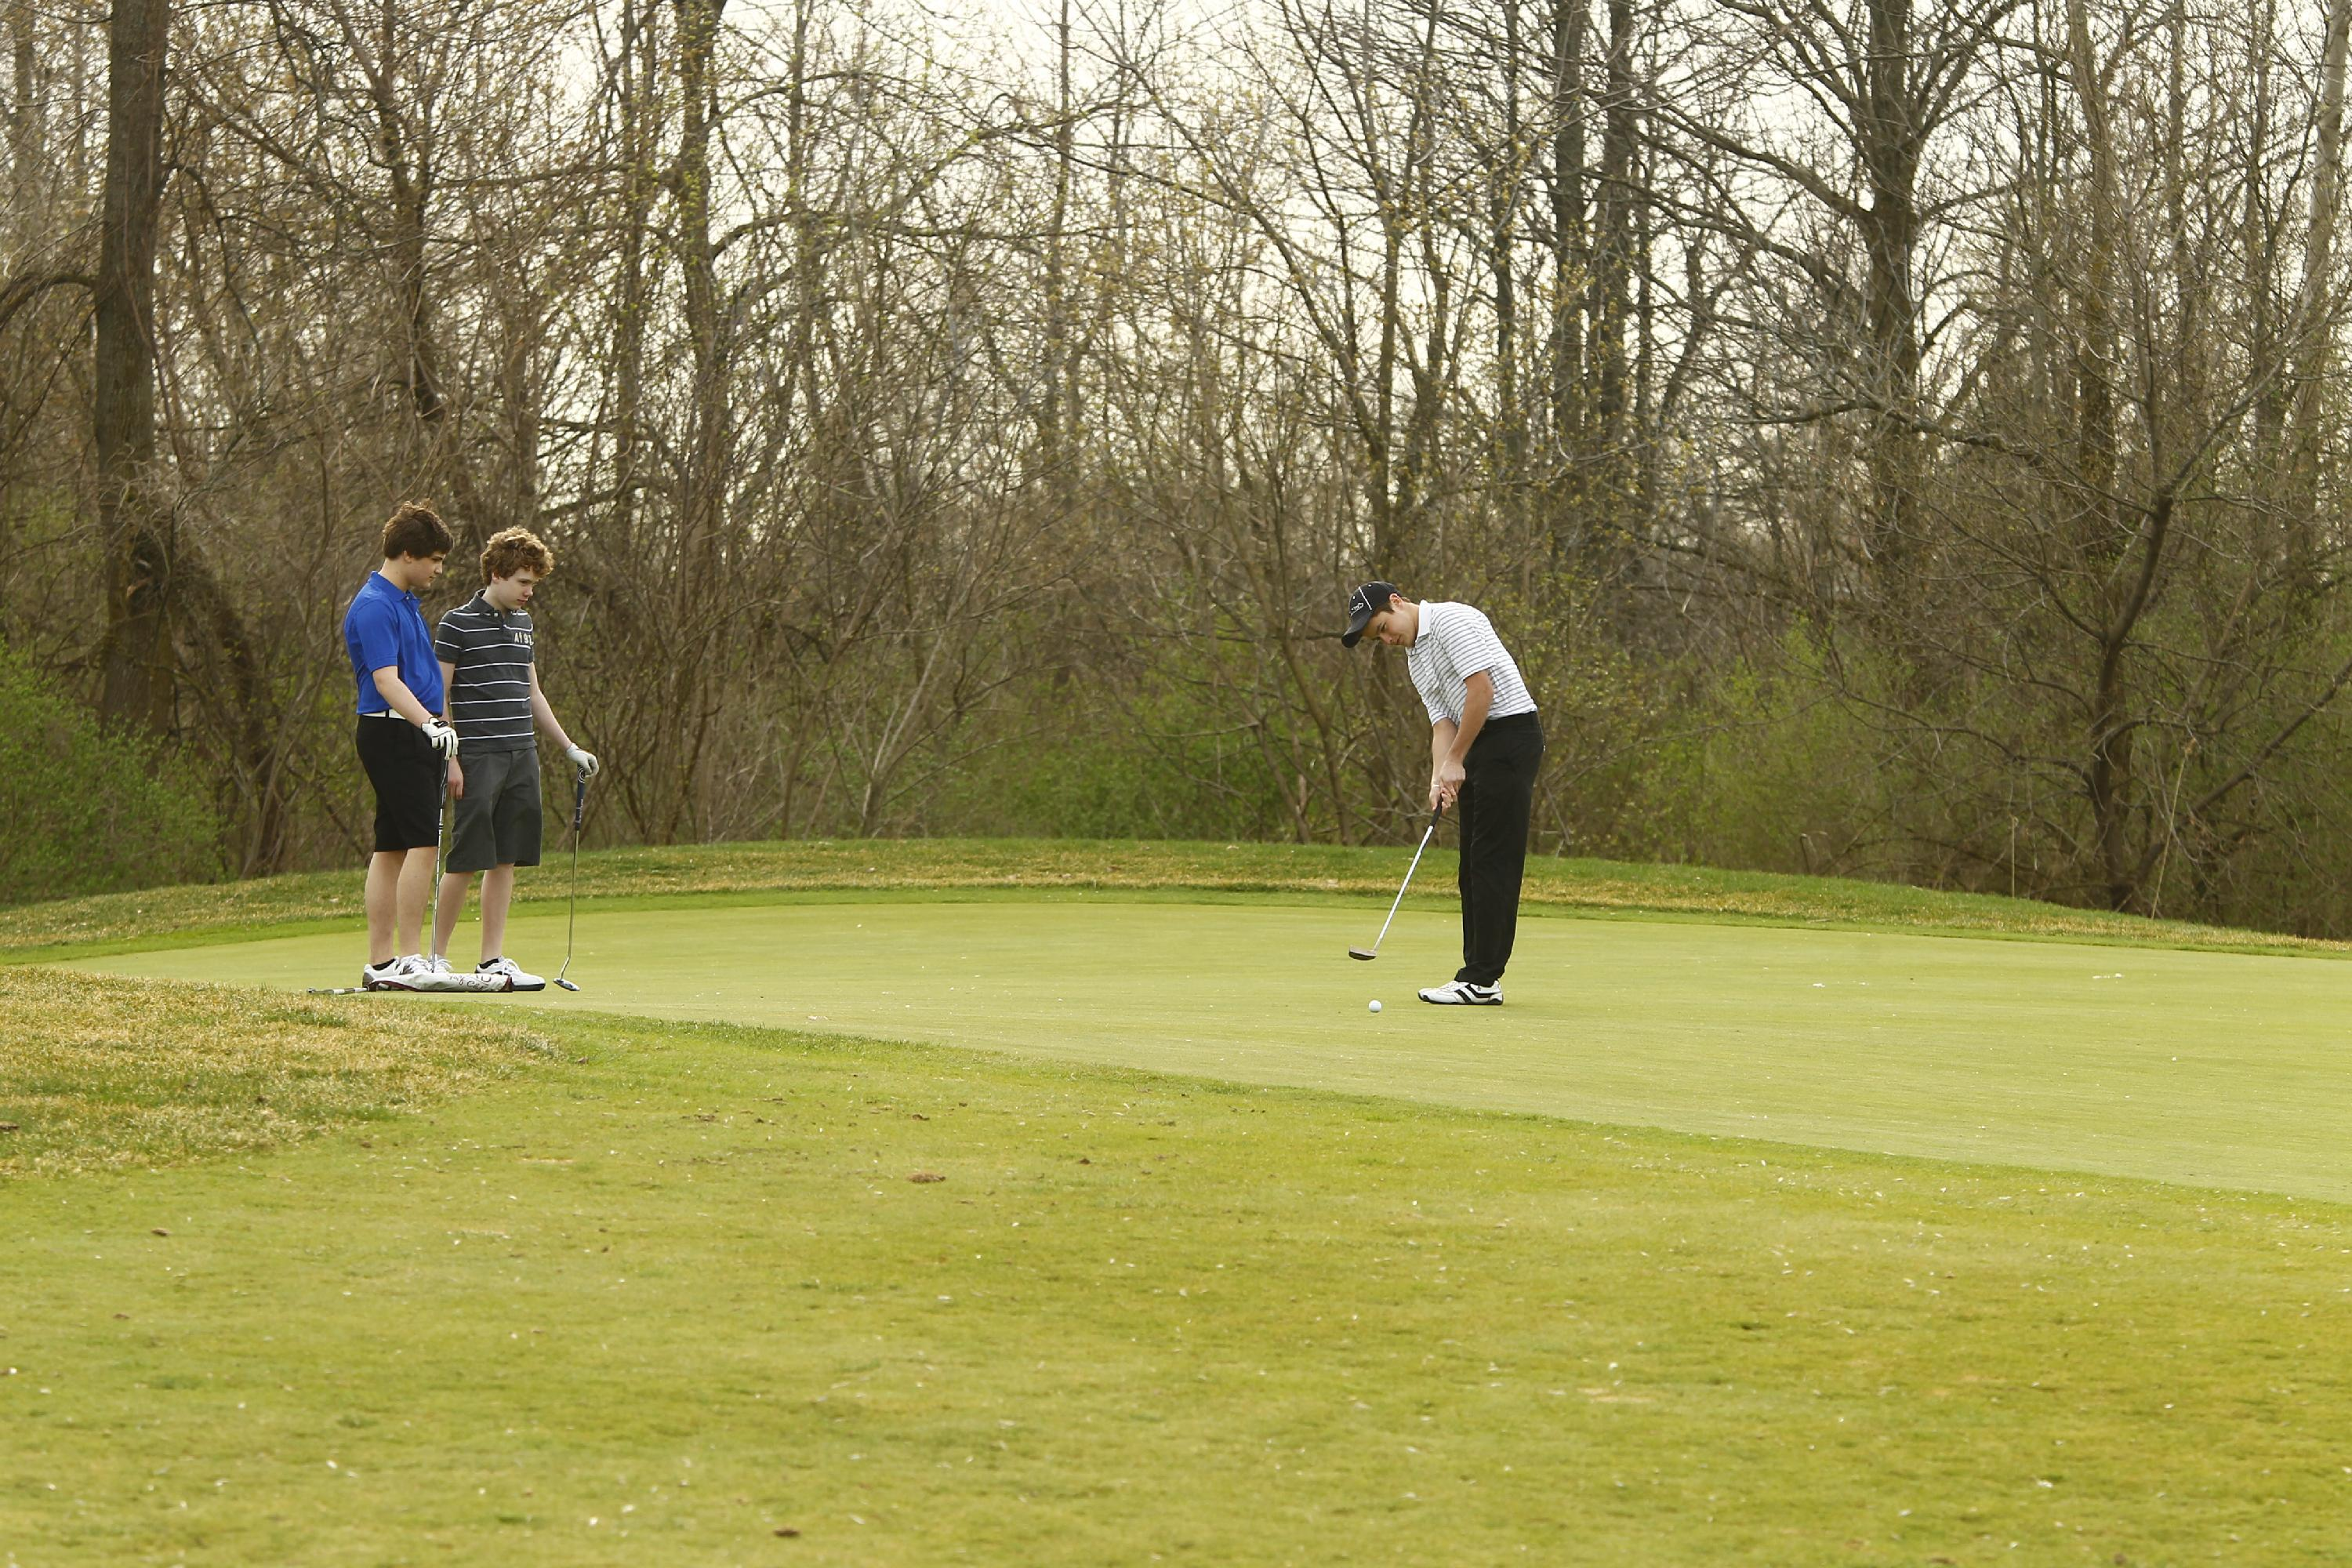 Unusually warm spring weather in 2012 allowed folks to hit the links as early as mid-March. Not only has that not yet happened this spring, but the temperature hasn't touched 60 degrees. (Buffalo News file photo)